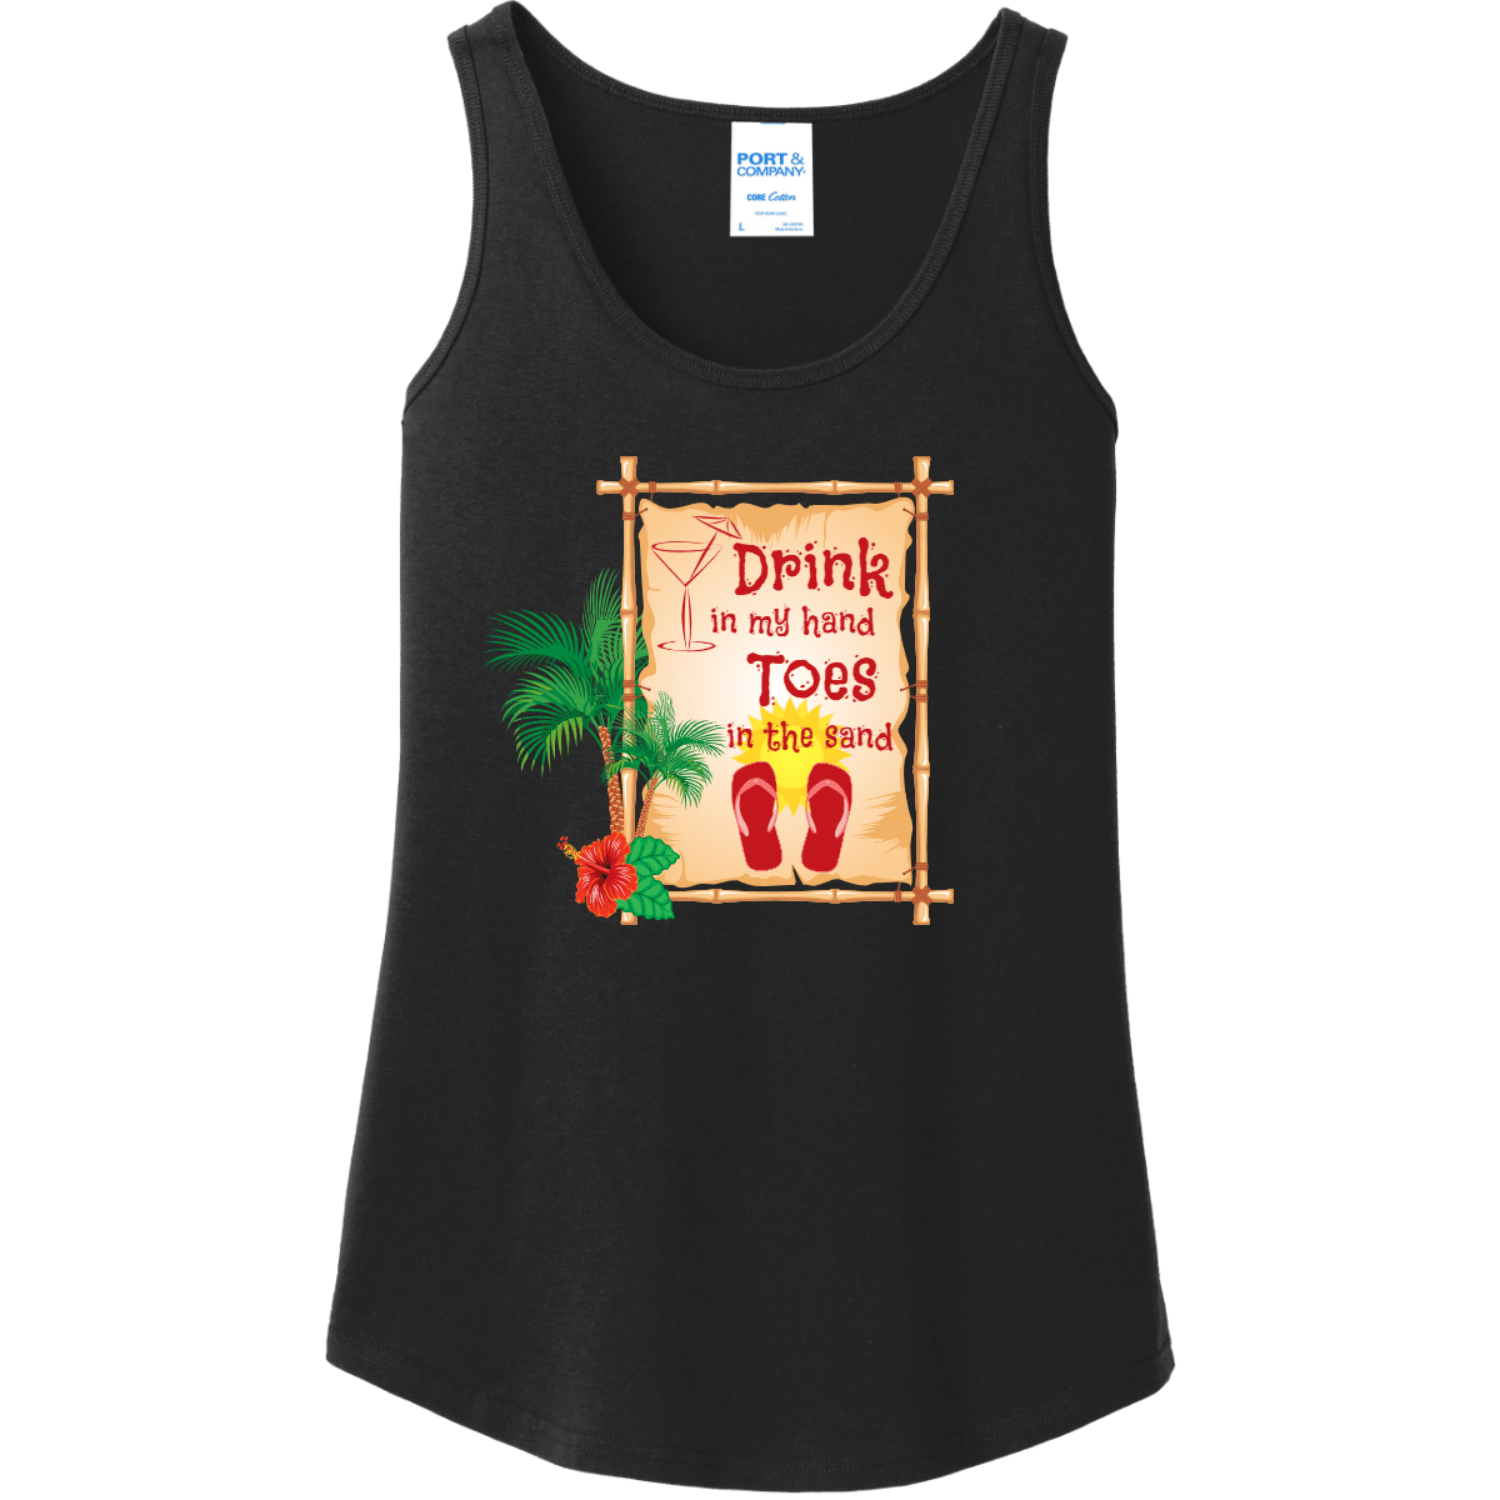 Drink In My Hand Toes In The Sand Tank Top Jet Black Port And Company Ladies Tank Top LPC54TT